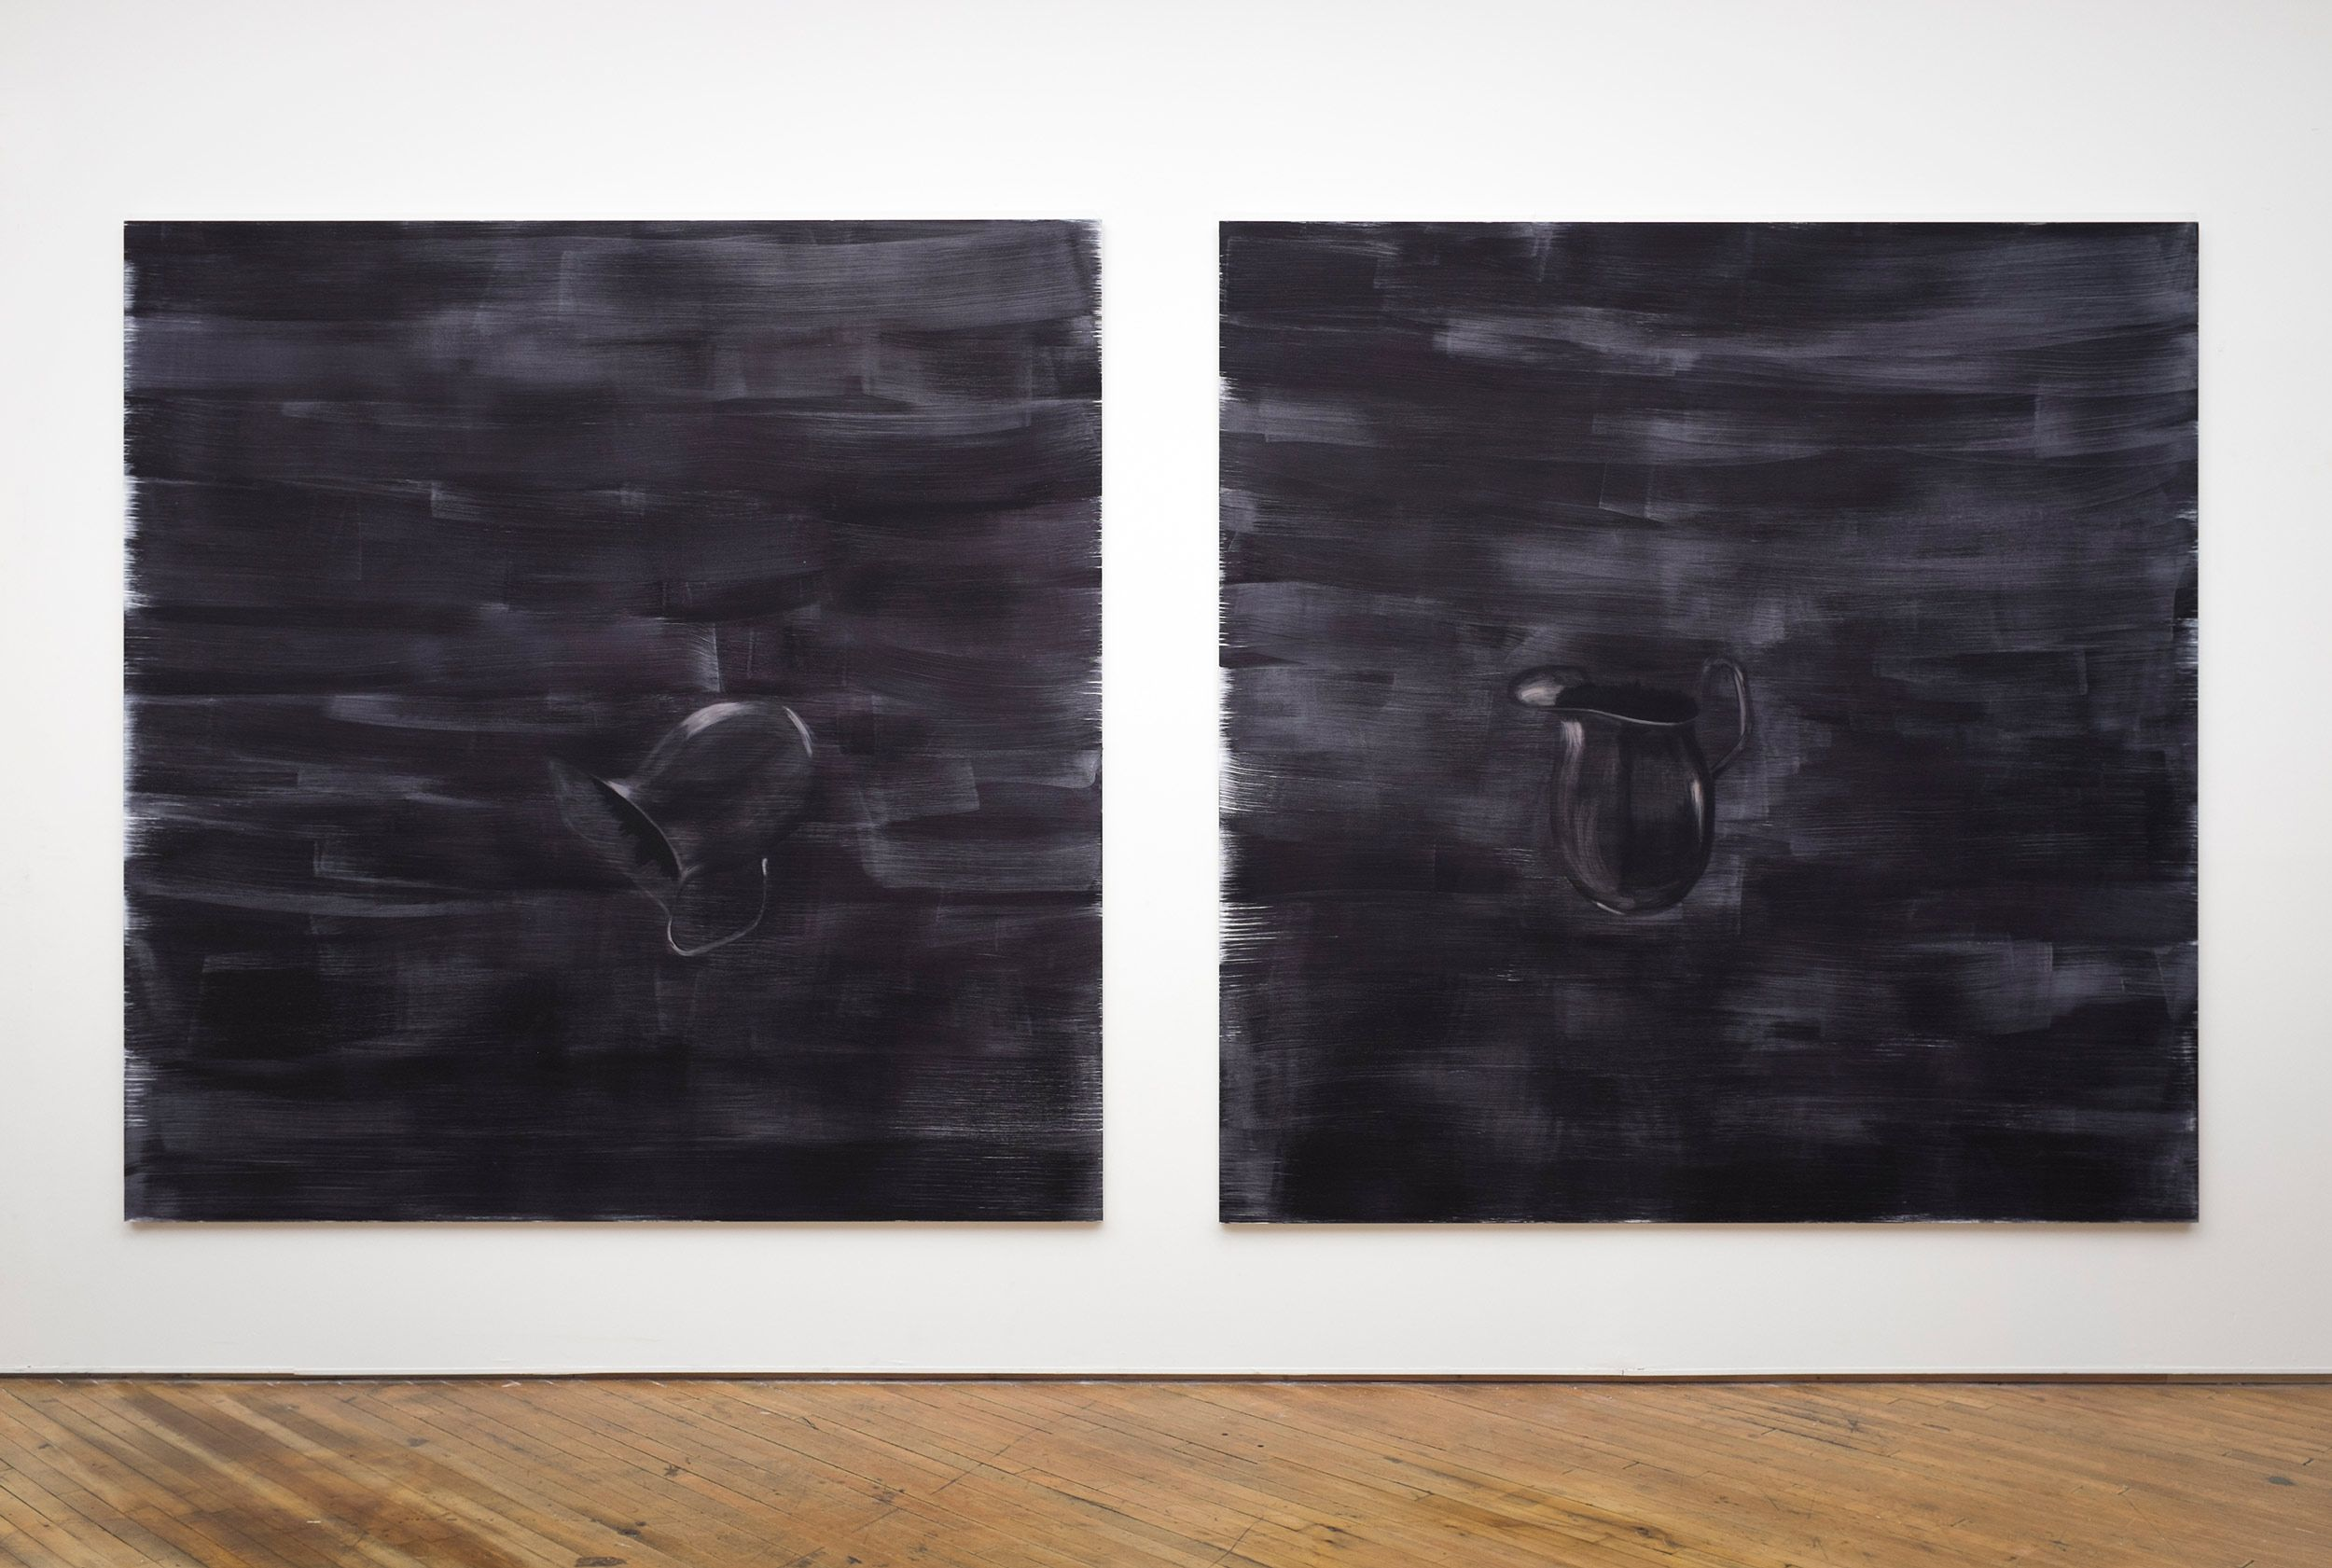 Diptych, 2015